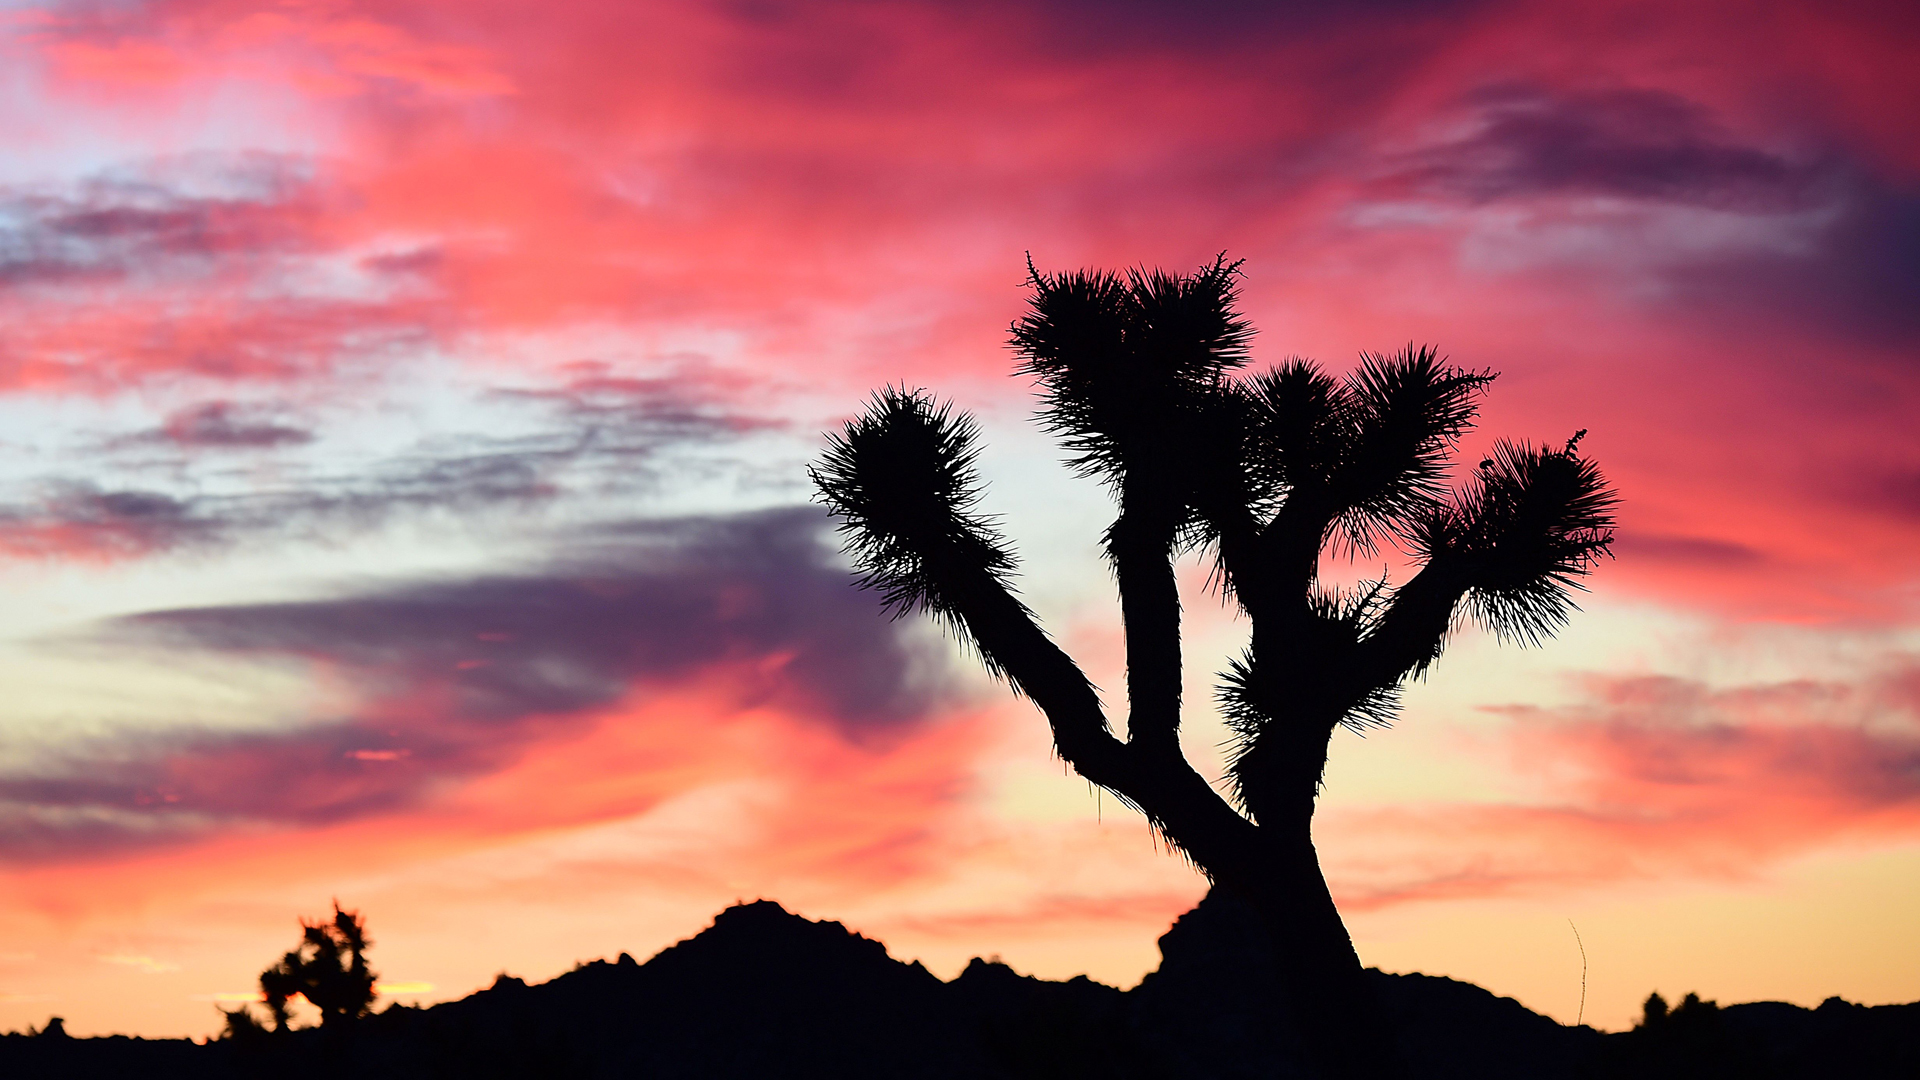 A Joshua Tree is framed by sunlit clouds before dawn in Pioneertown, in the Mojave Desert, on January 25, 2016. (Credit: ROBYN BECK/AFP/Getty Images)